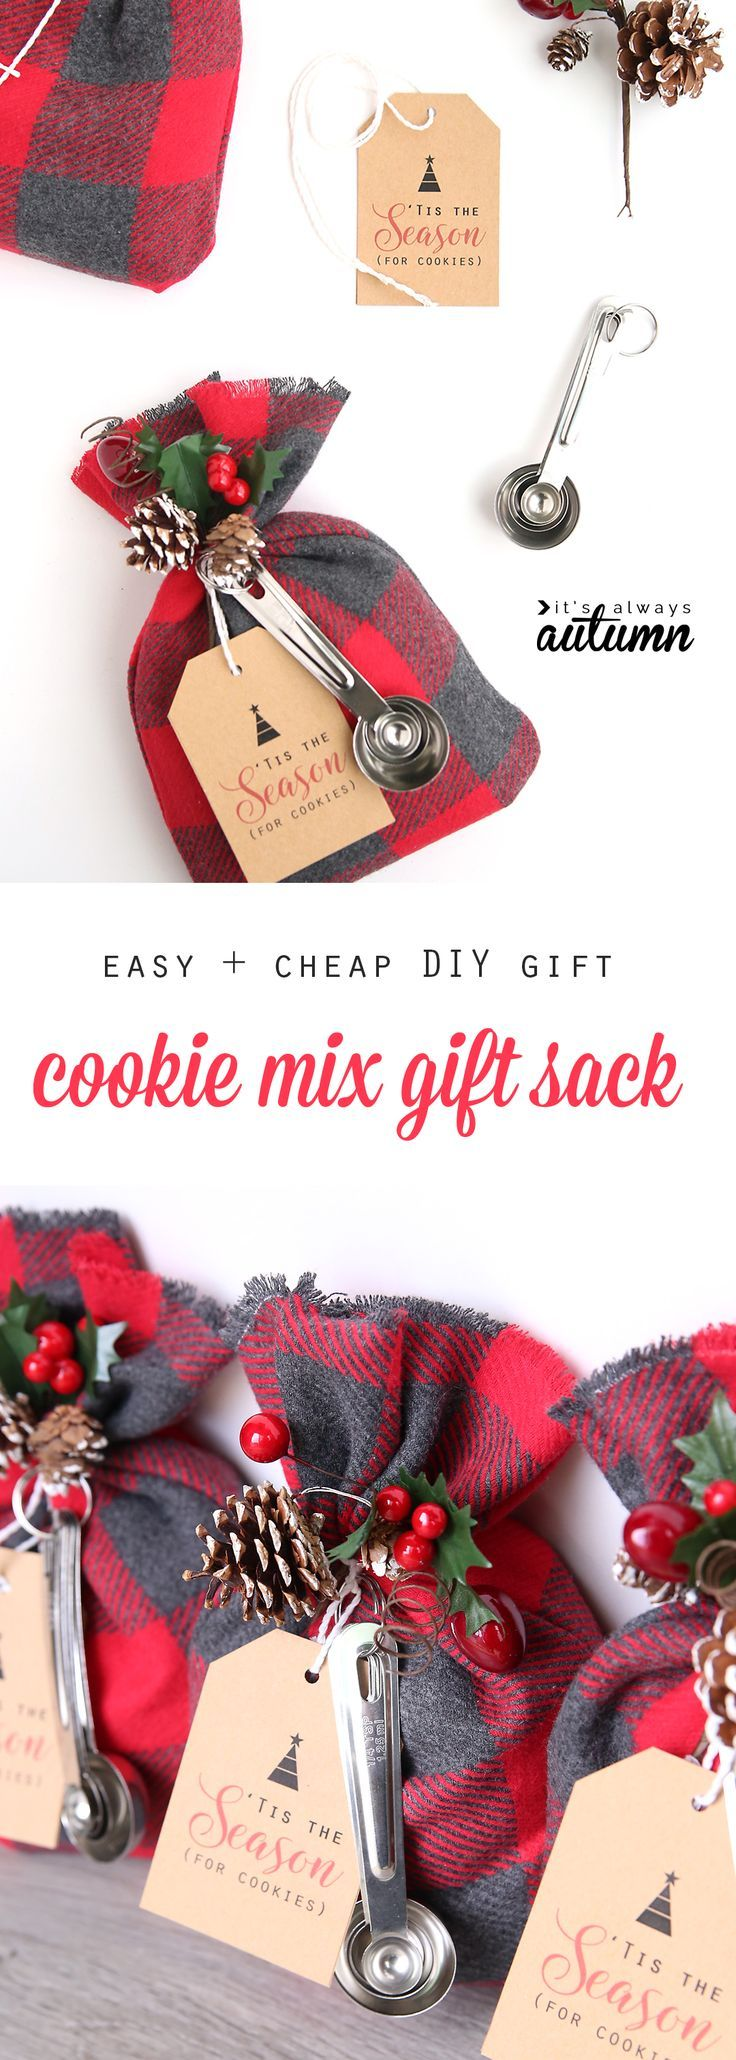 246 best diy gifts images on pinterest christmas gift ideas hand cookie mix gift sack easy diy christmas solutioingenieria Image collections